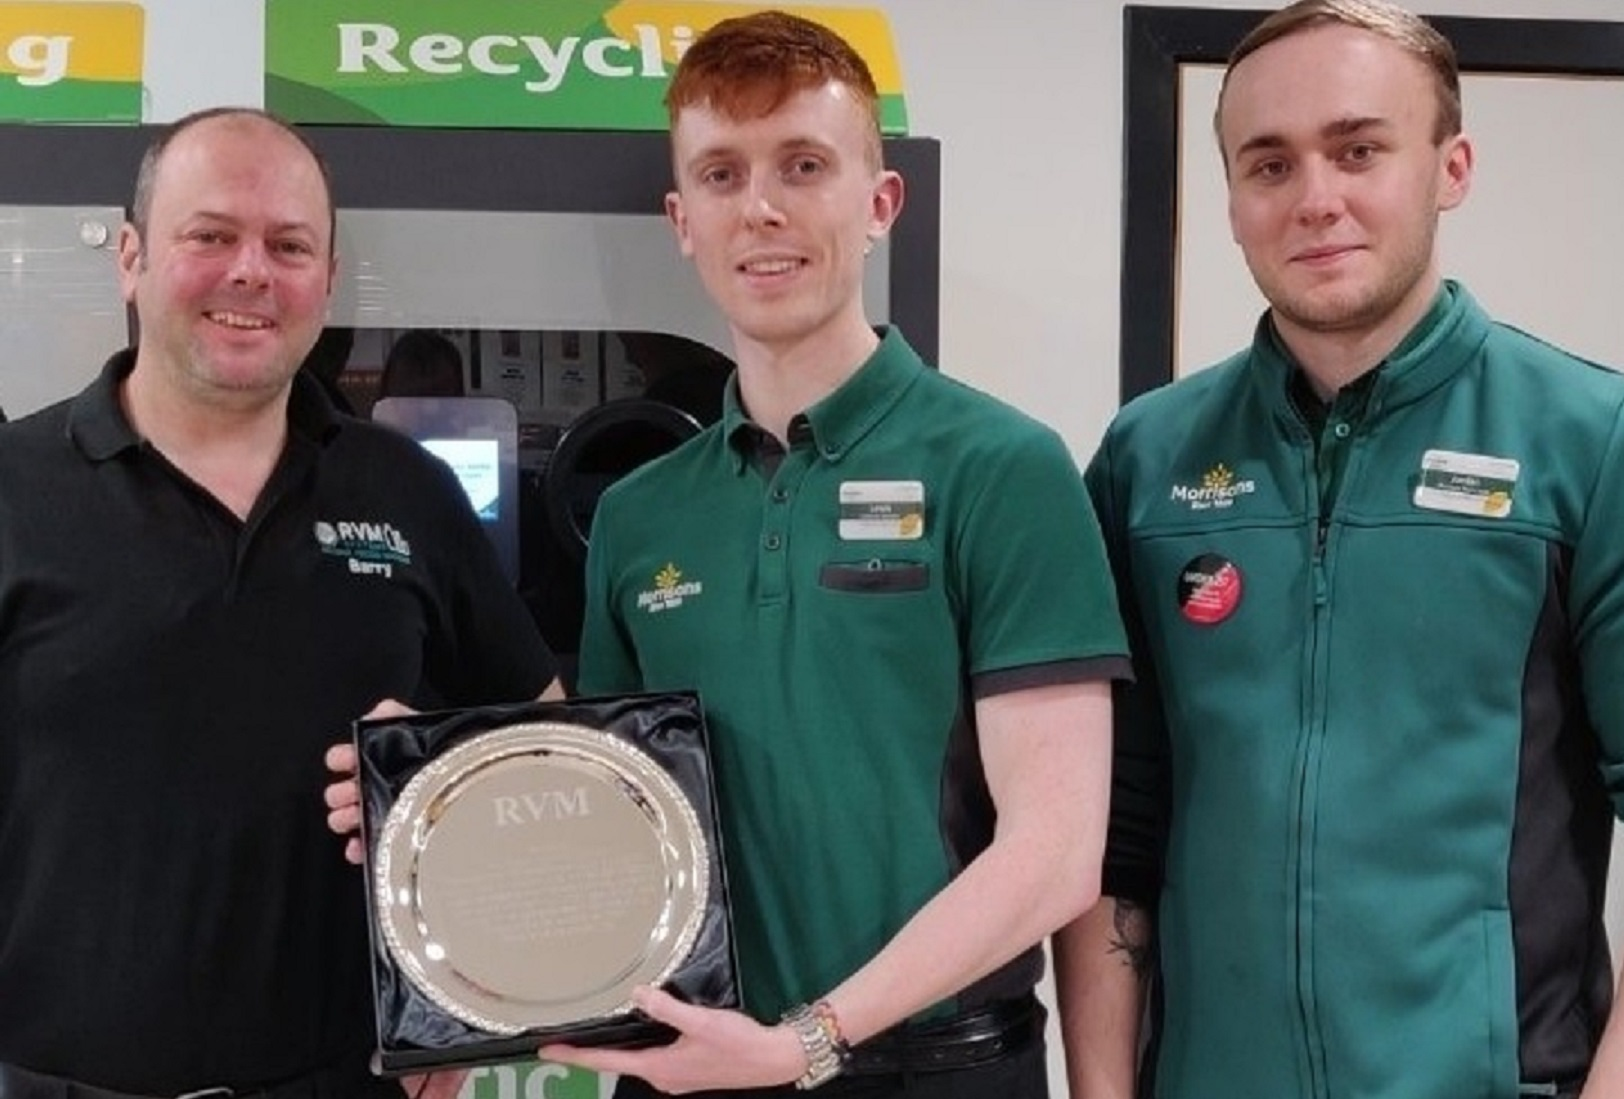 2 Million used drink containers recycled at one store in Scotland!